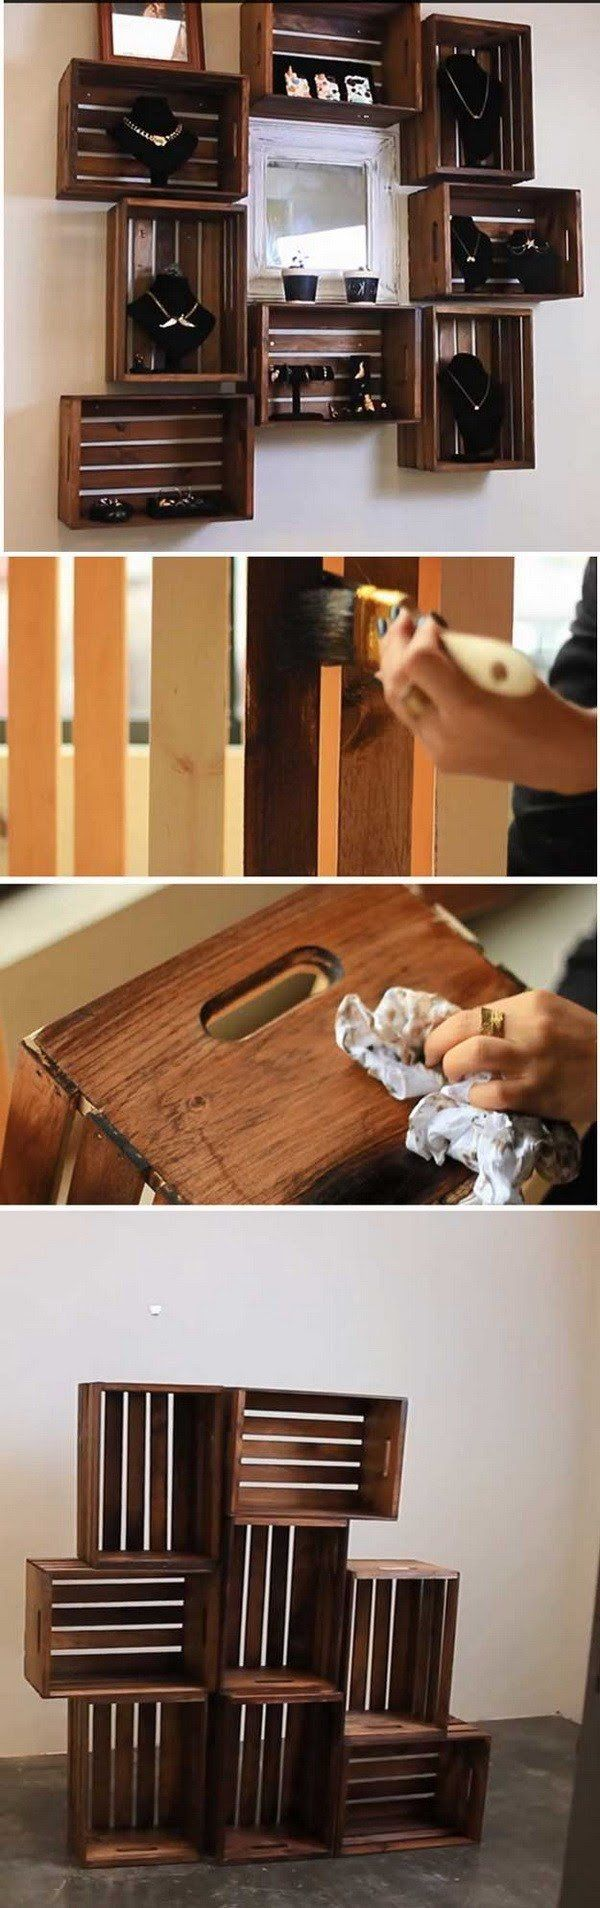 DIY Wooden Crate Shelves. An ideal way to upcycle old materials into new, useful…  – Organize